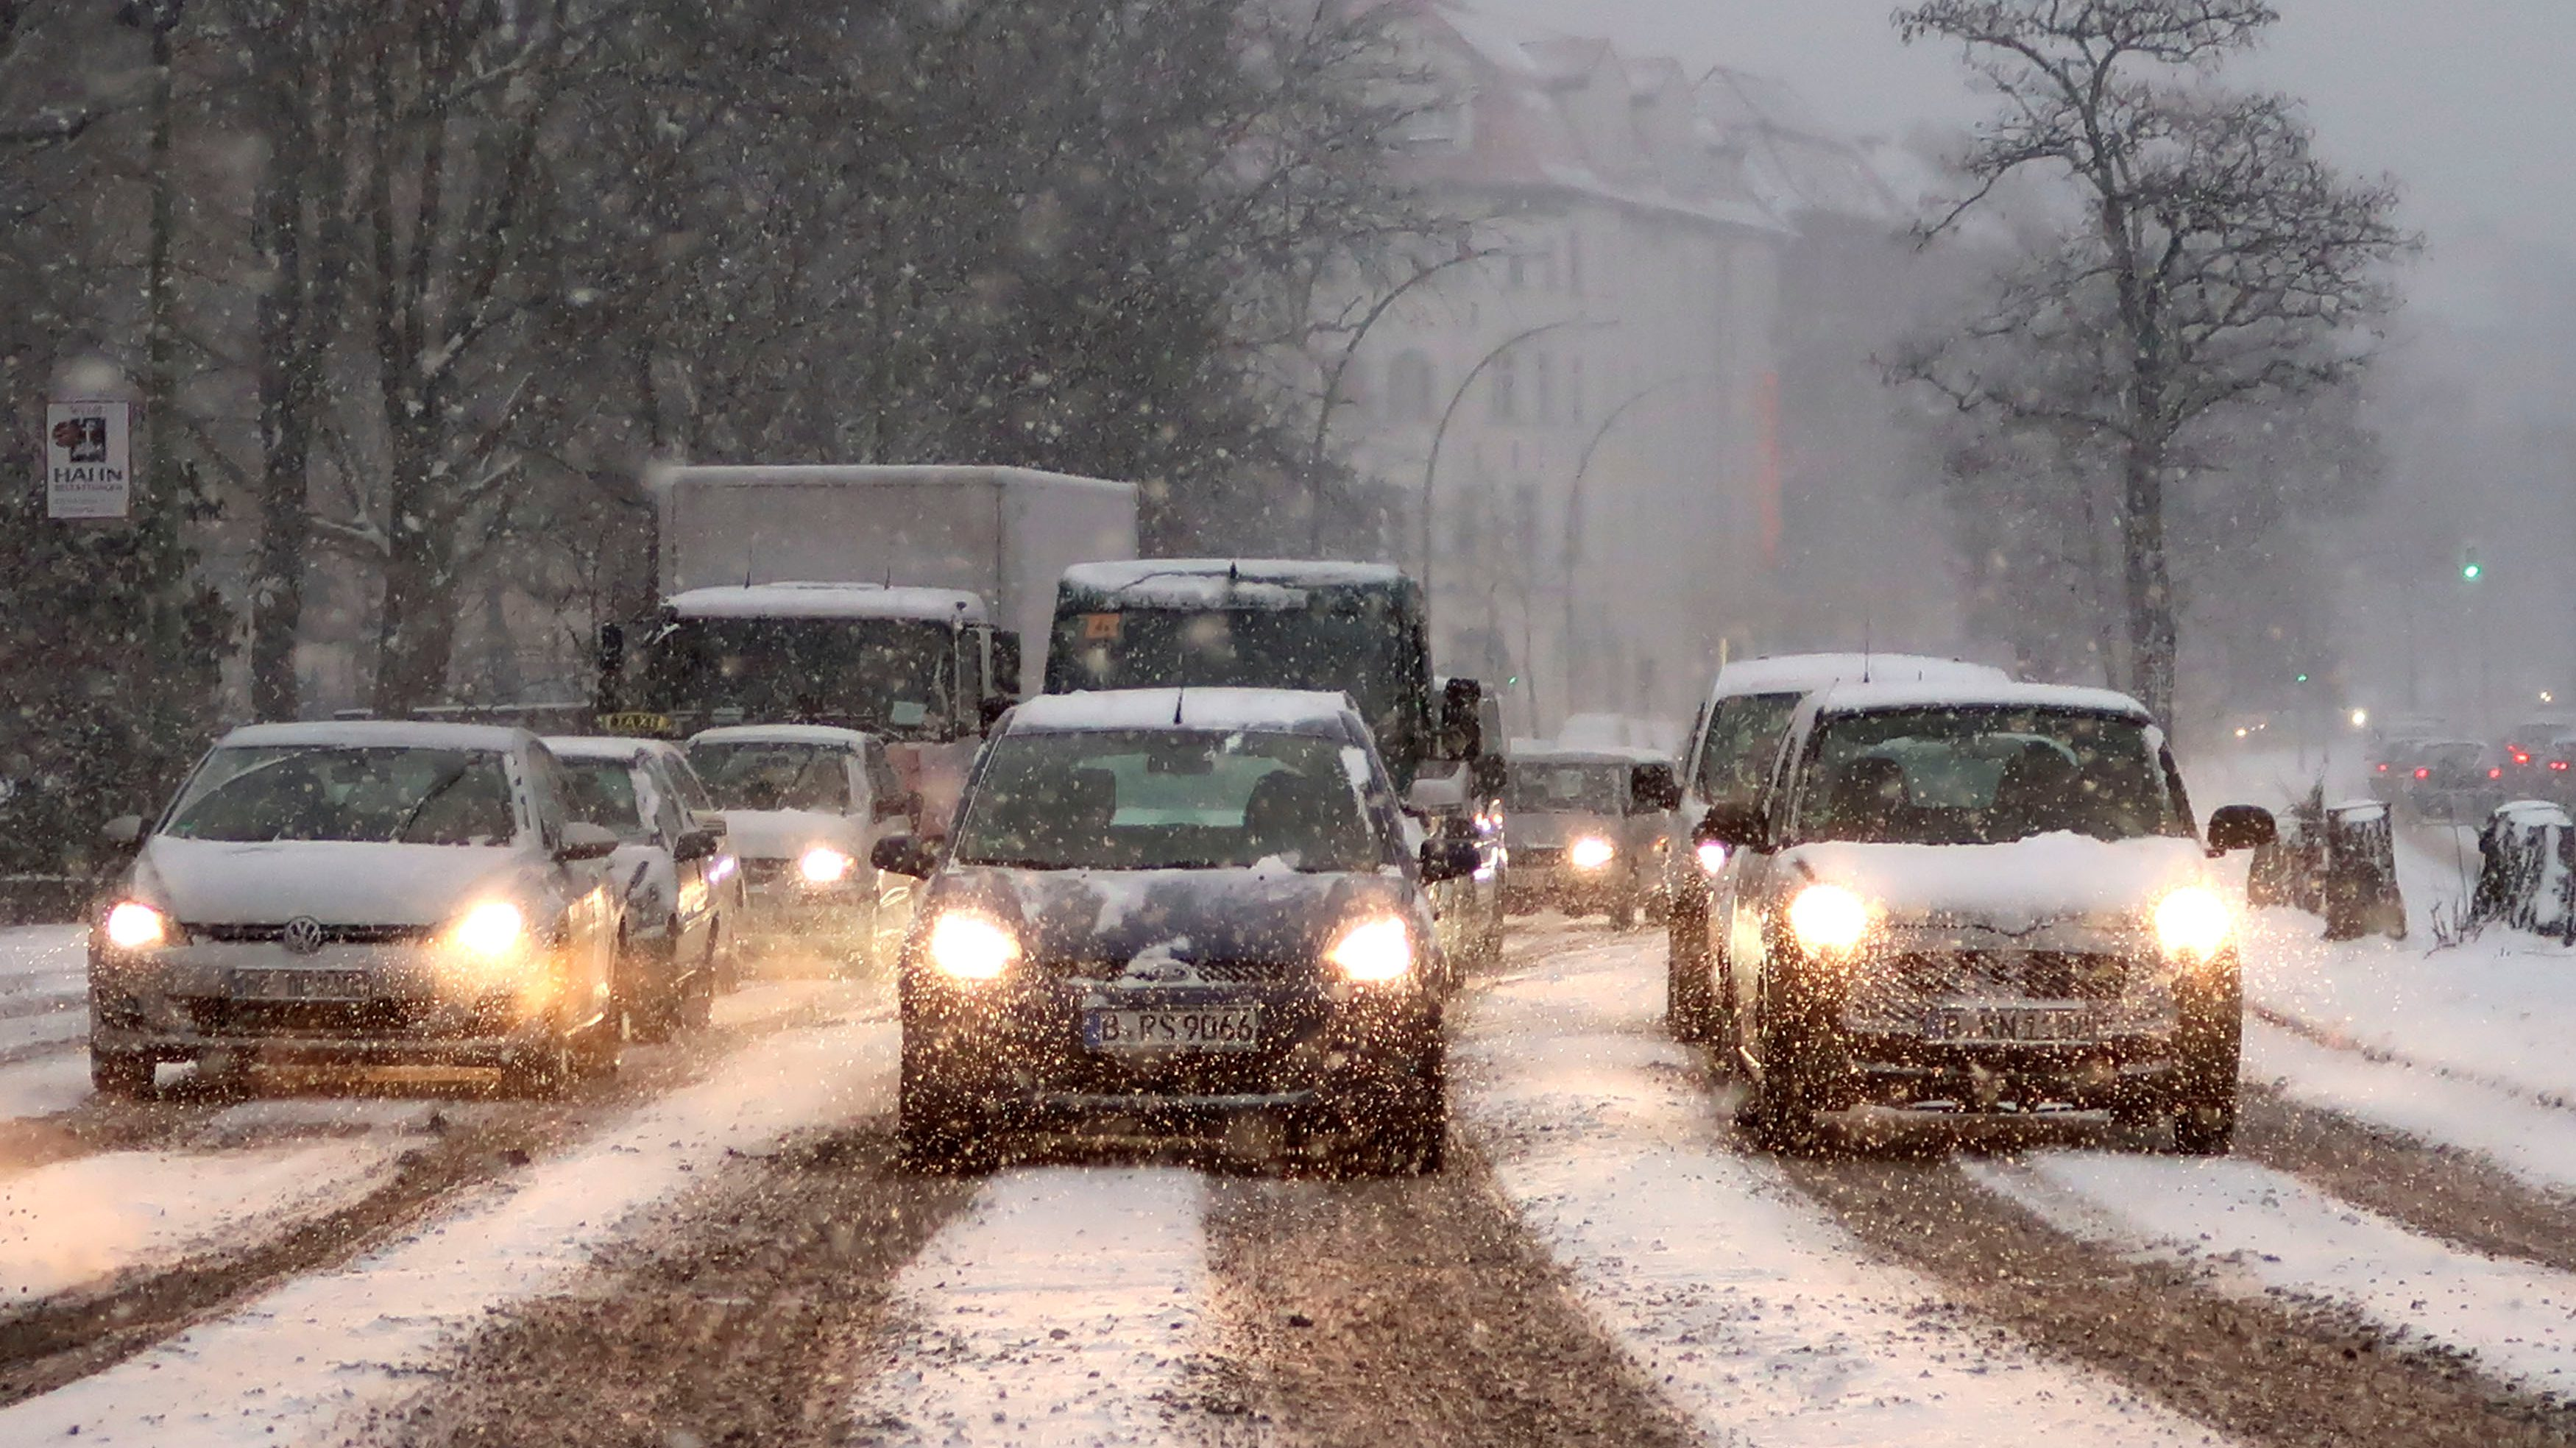 Cars drive on a street during a heavy snow fall in Berlin, Germany.